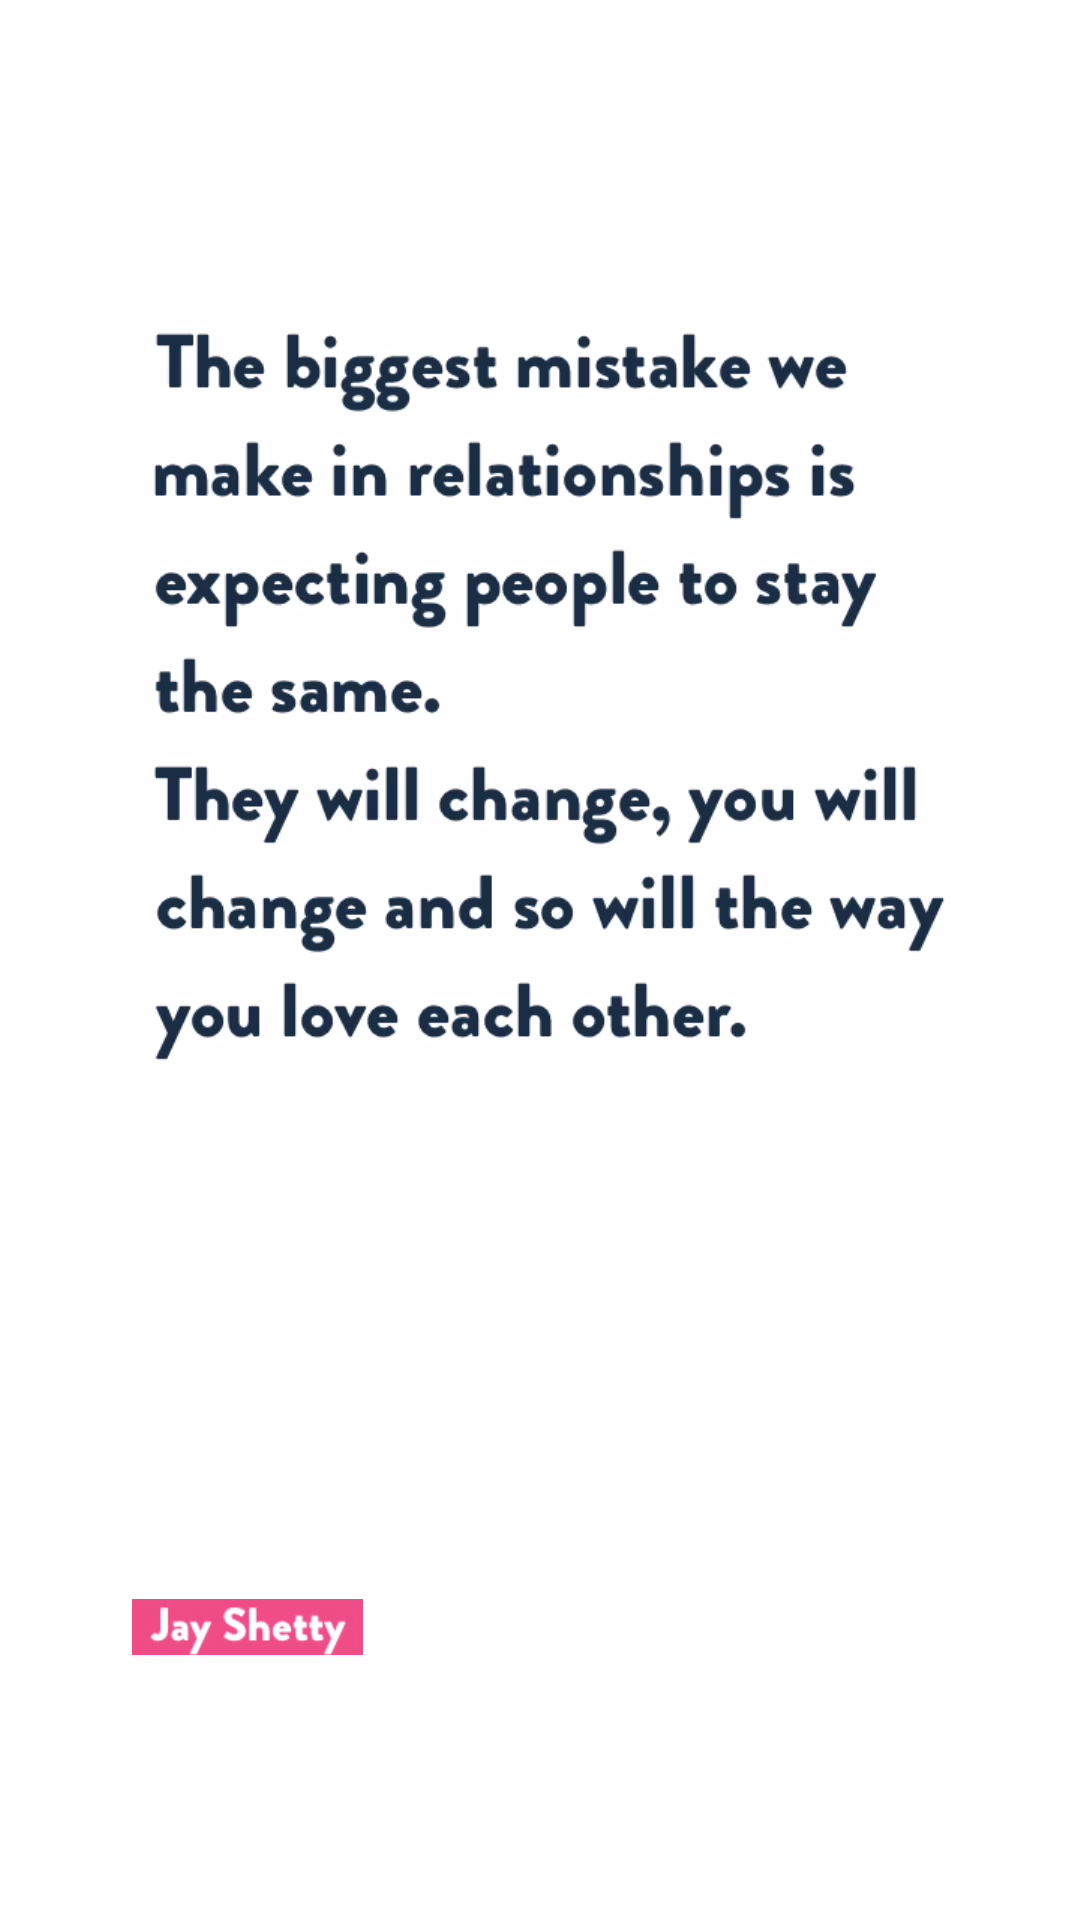 6 Steps to a Better Relationship - Understanding the 5 Love Languages